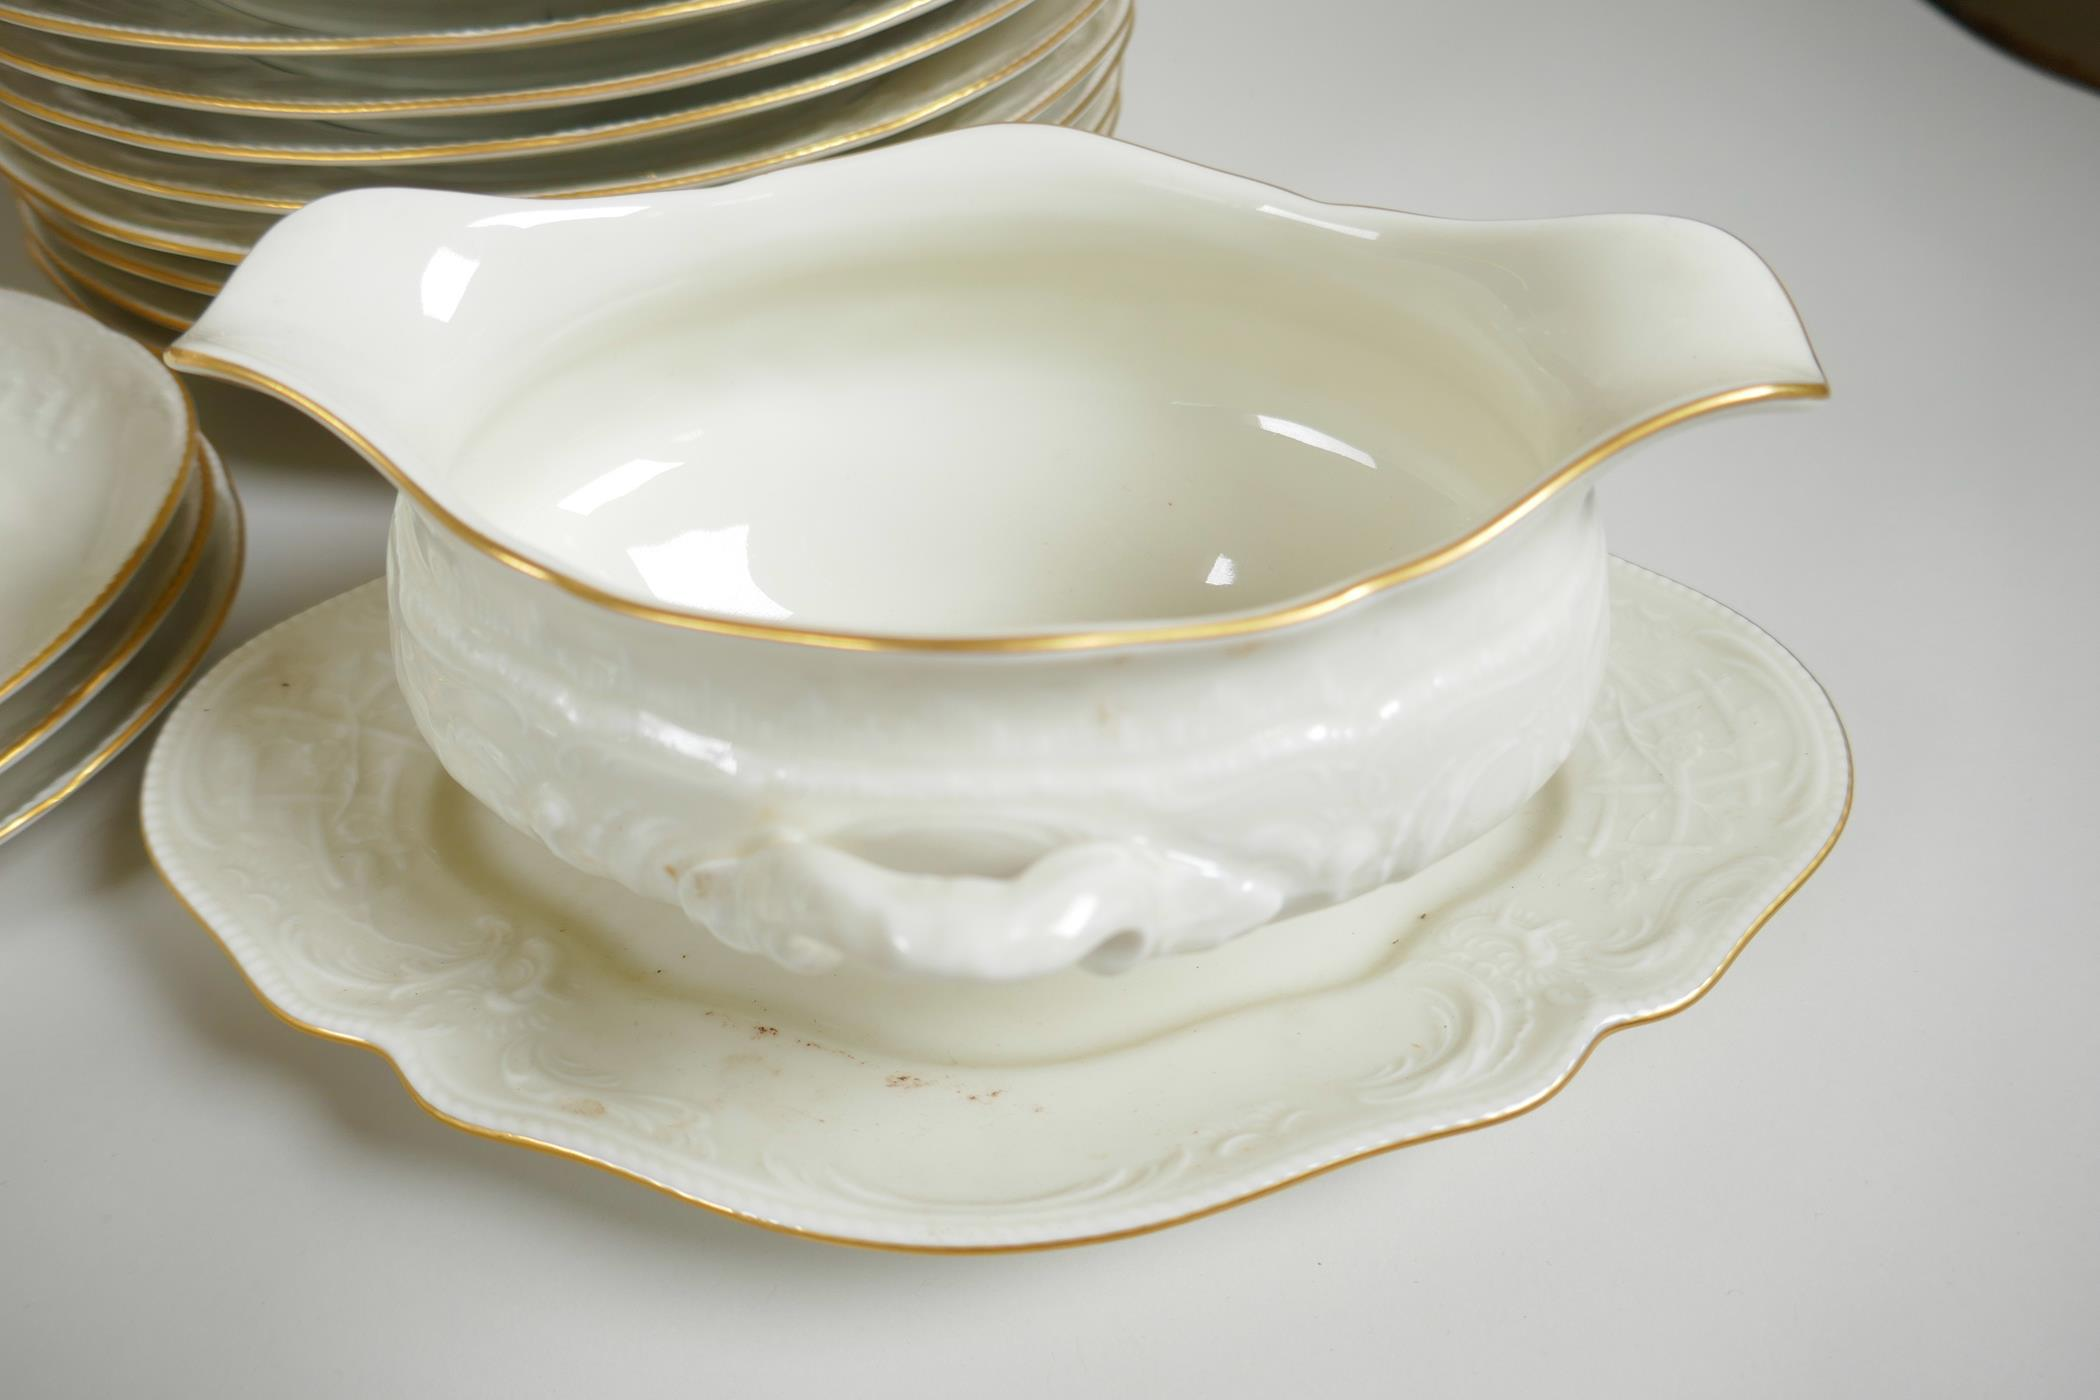 A Rosenthal 'Classic' part dinner and tea service with cream glaze and embossed decoration - Image 2 of 5